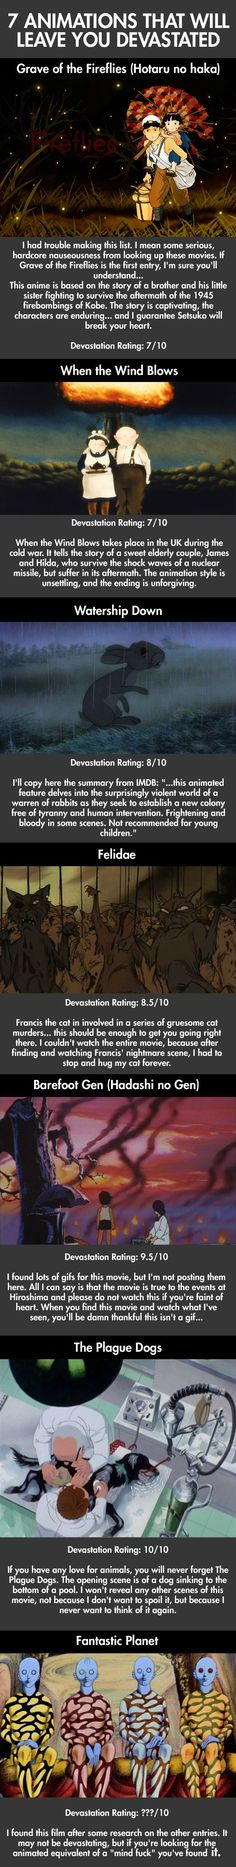 not all animated movies are for kids. - Imgur